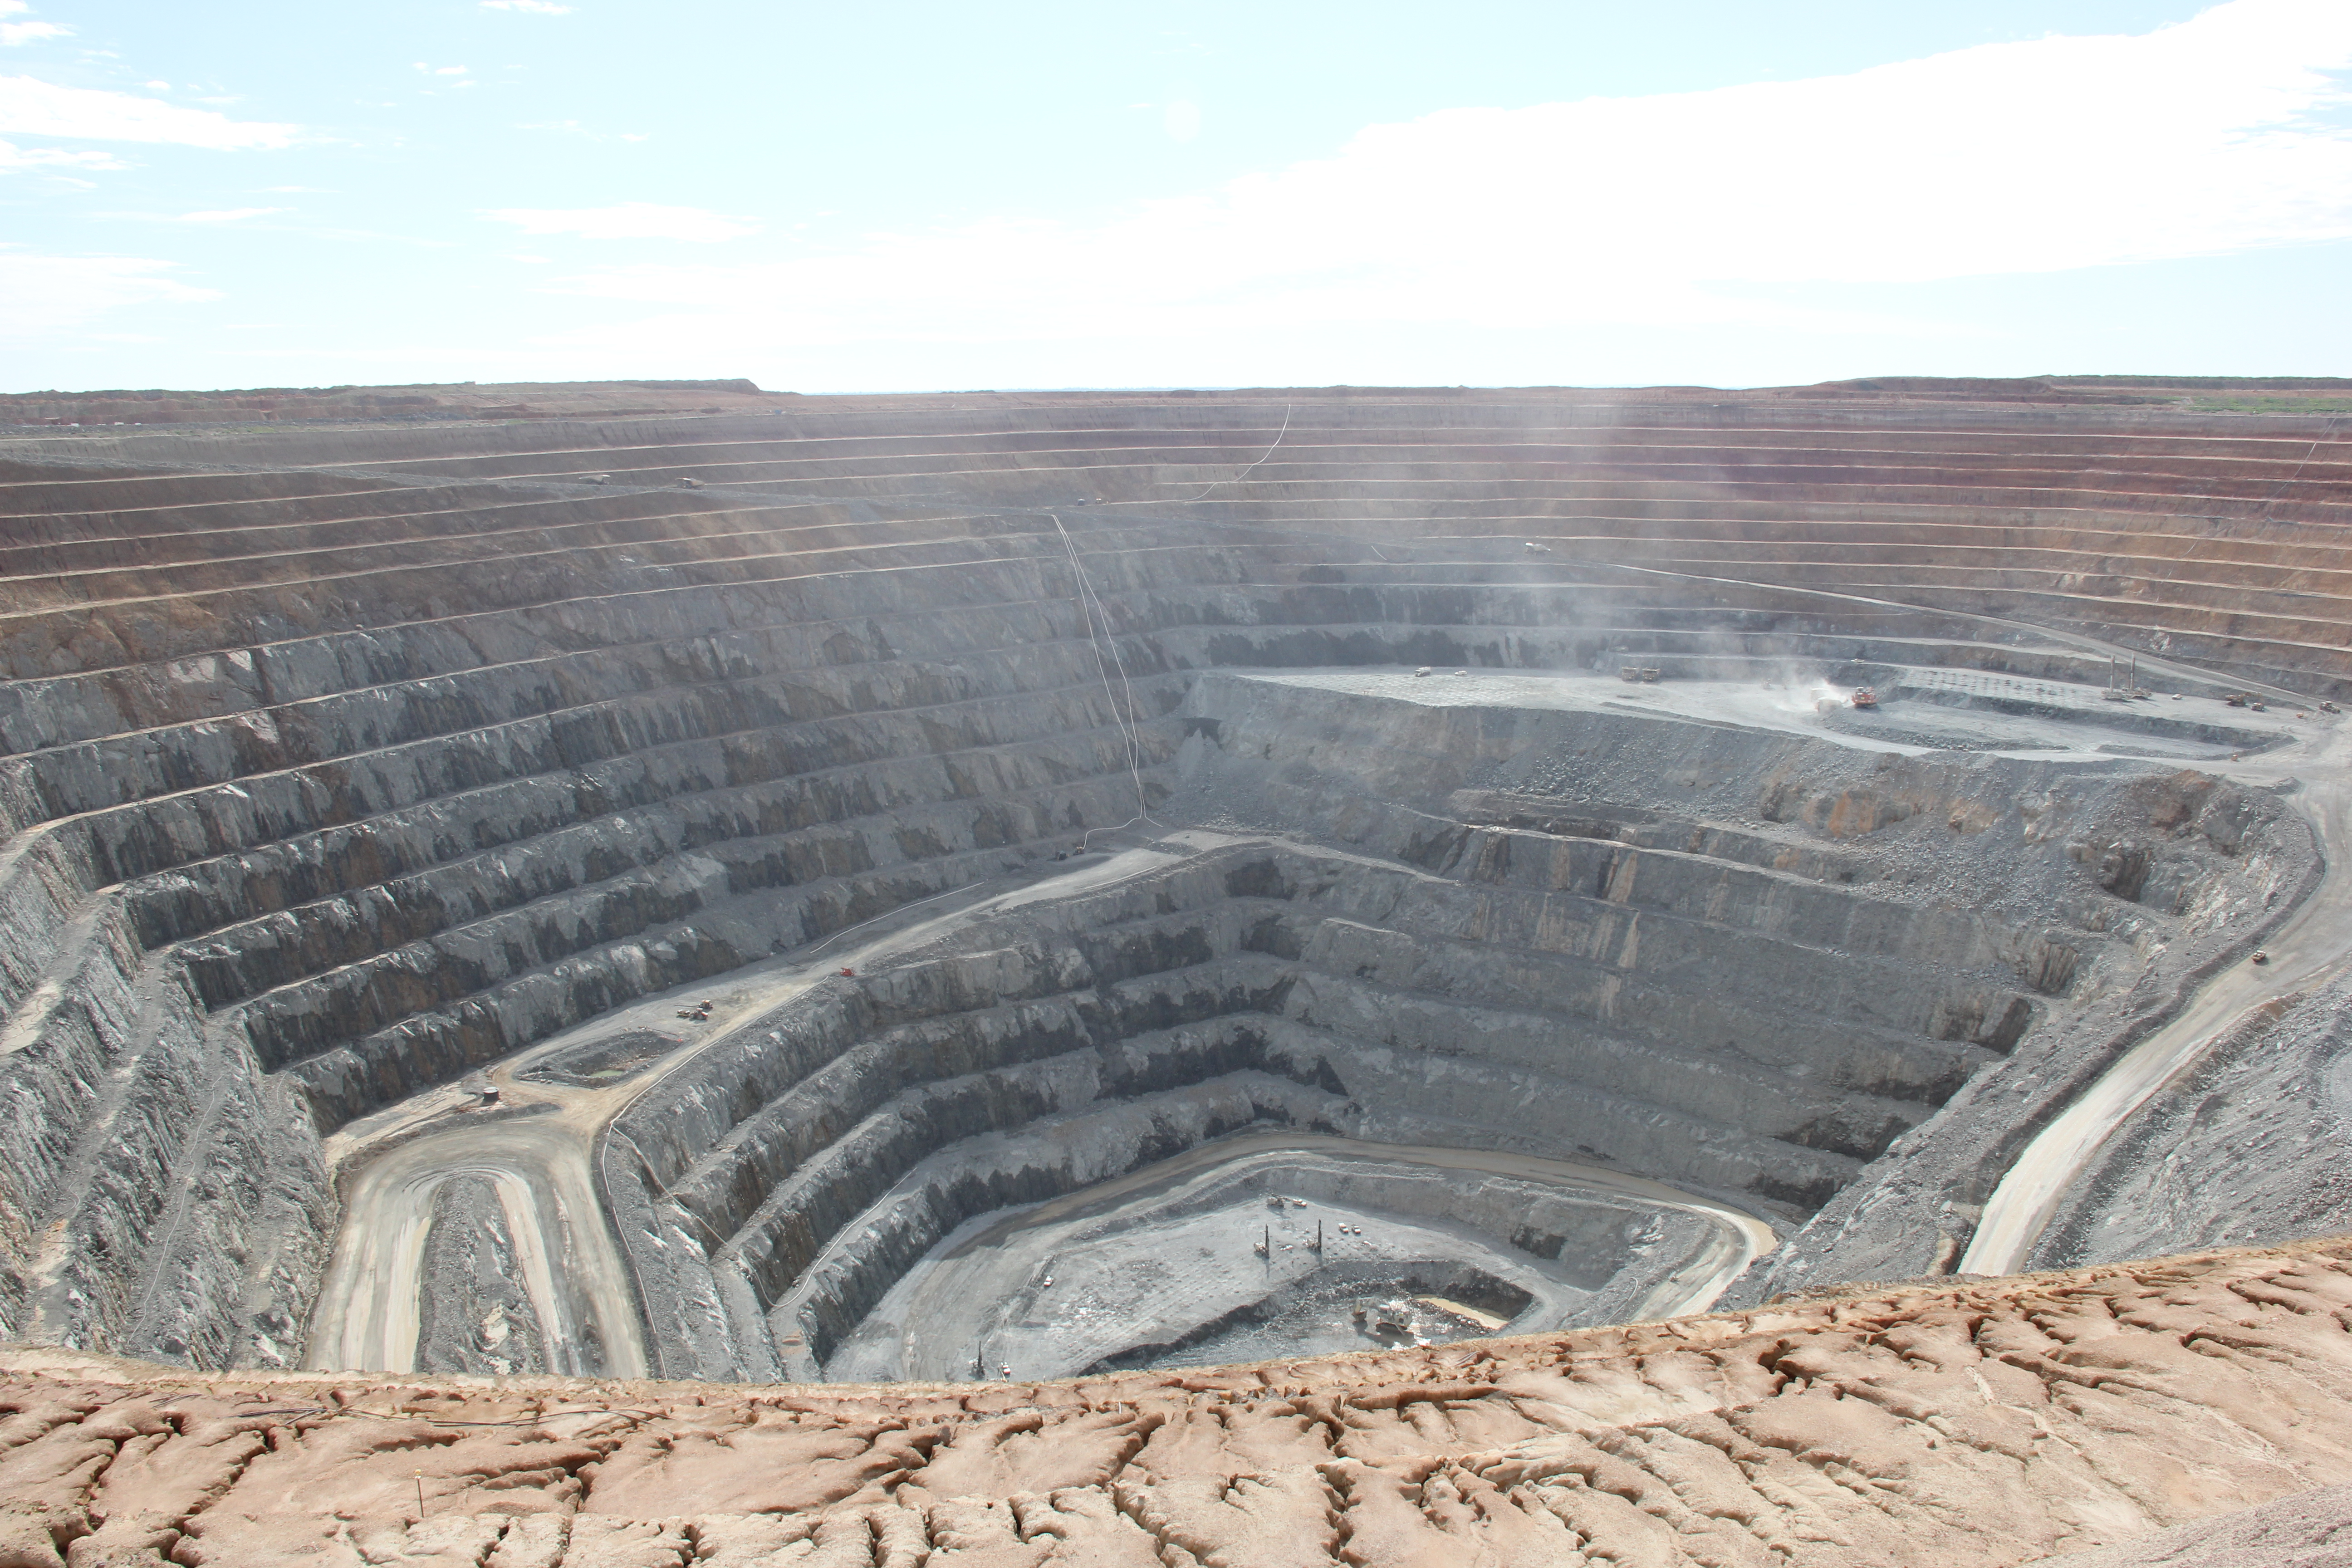 Our wear protection systems for mining buckets provide maximum relability and productivity for the mines.